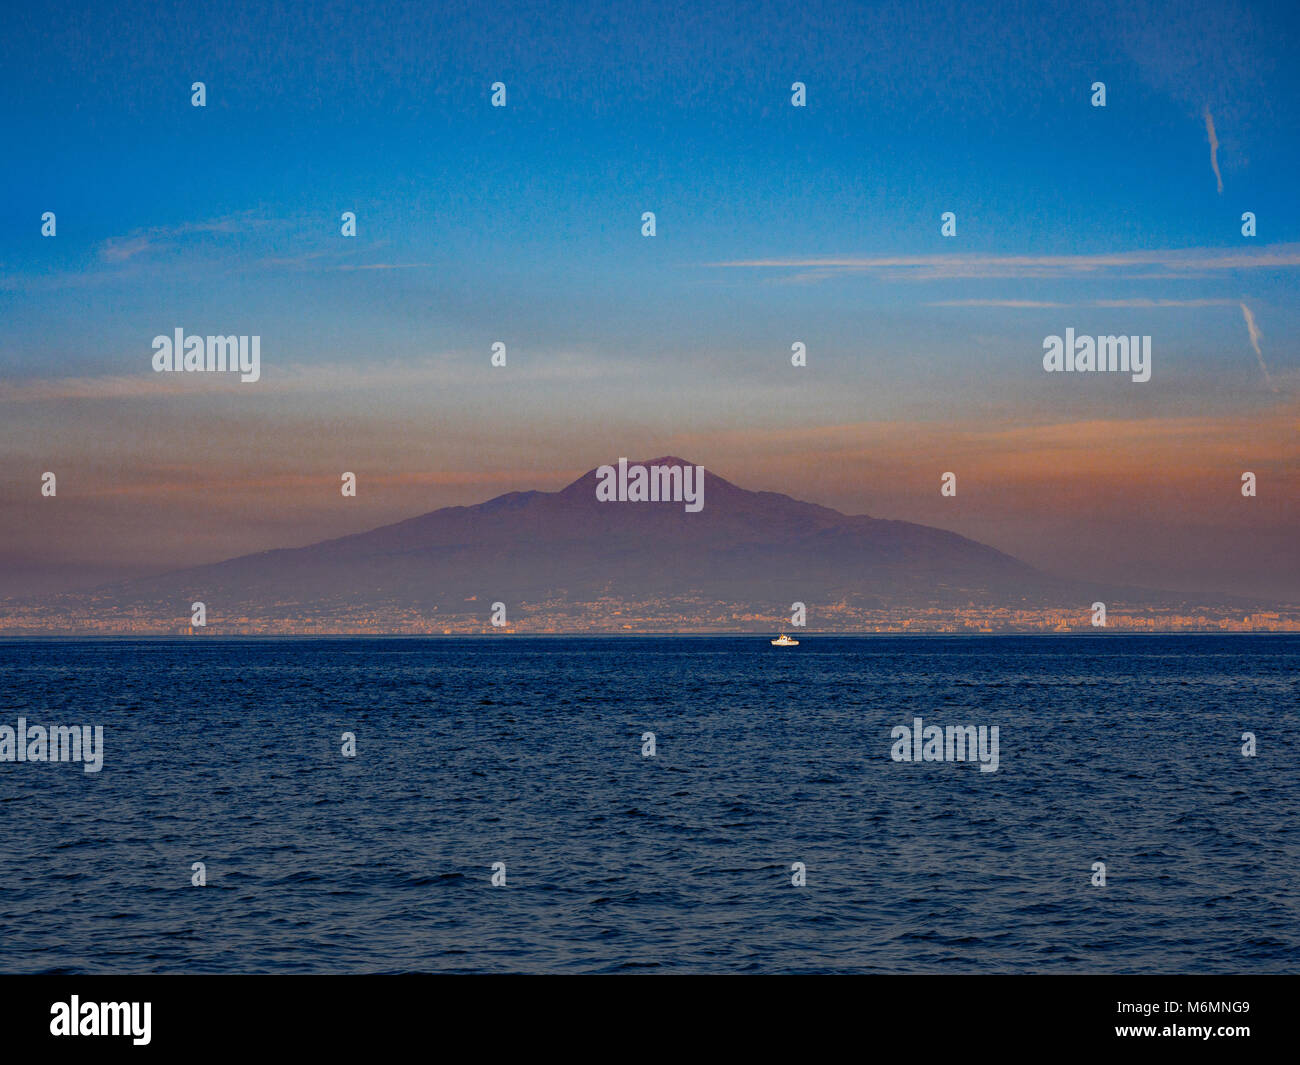 Vesuvius from the Bay of Naples, Italy. - Stock Image